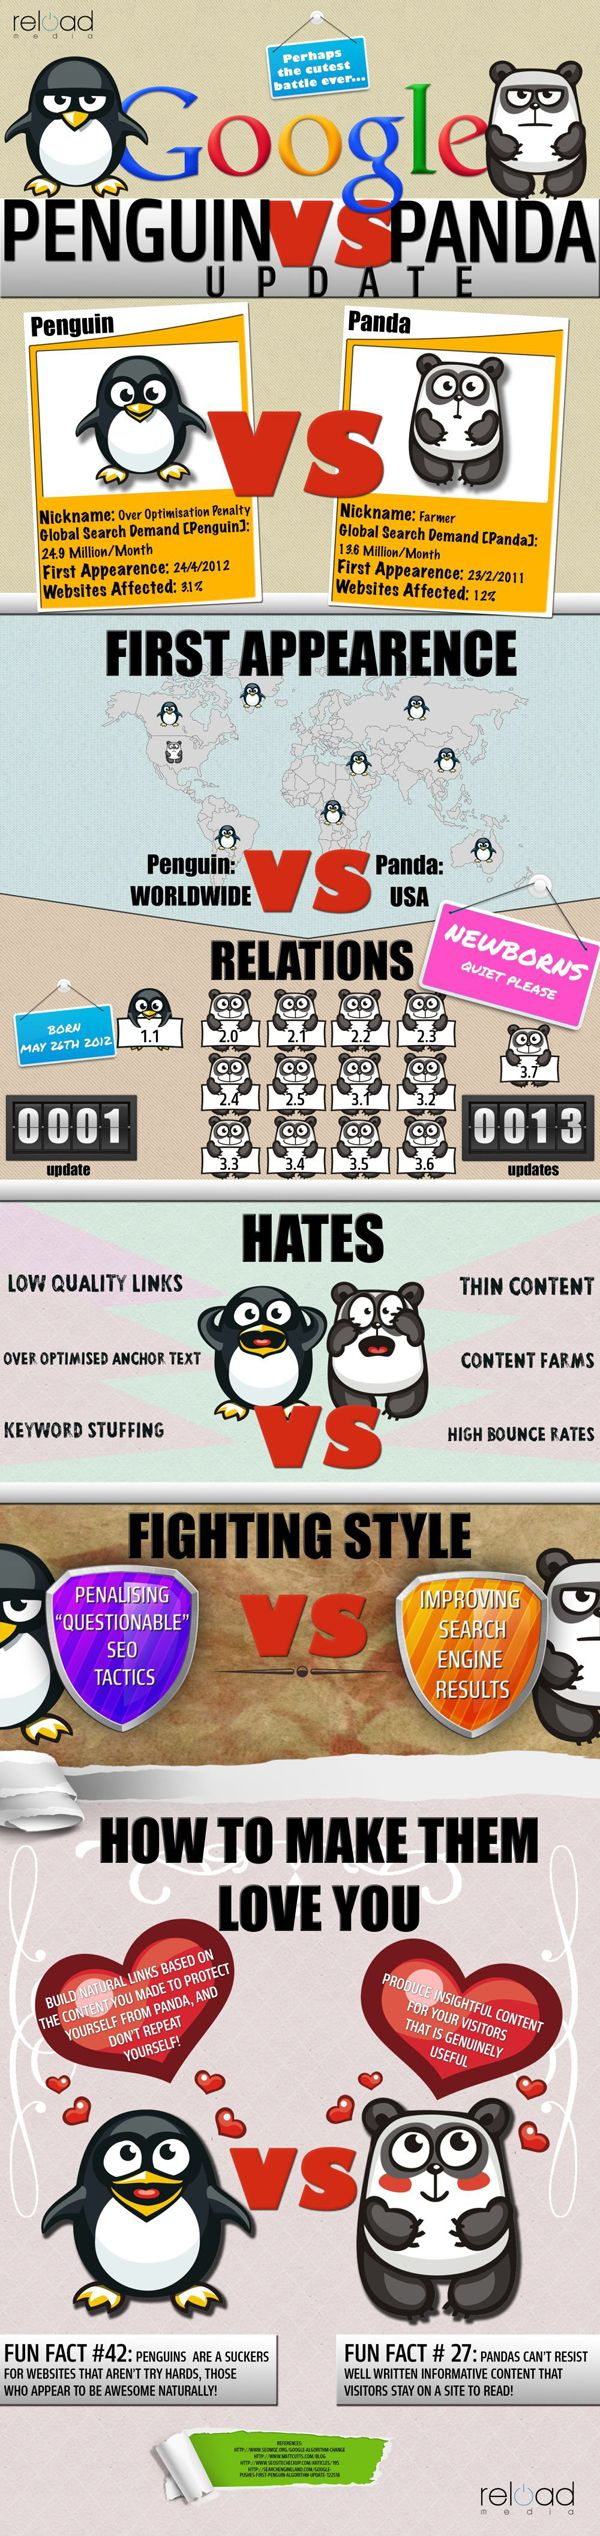 #Google Penguin Vs Google Panda - Search Engine Updates